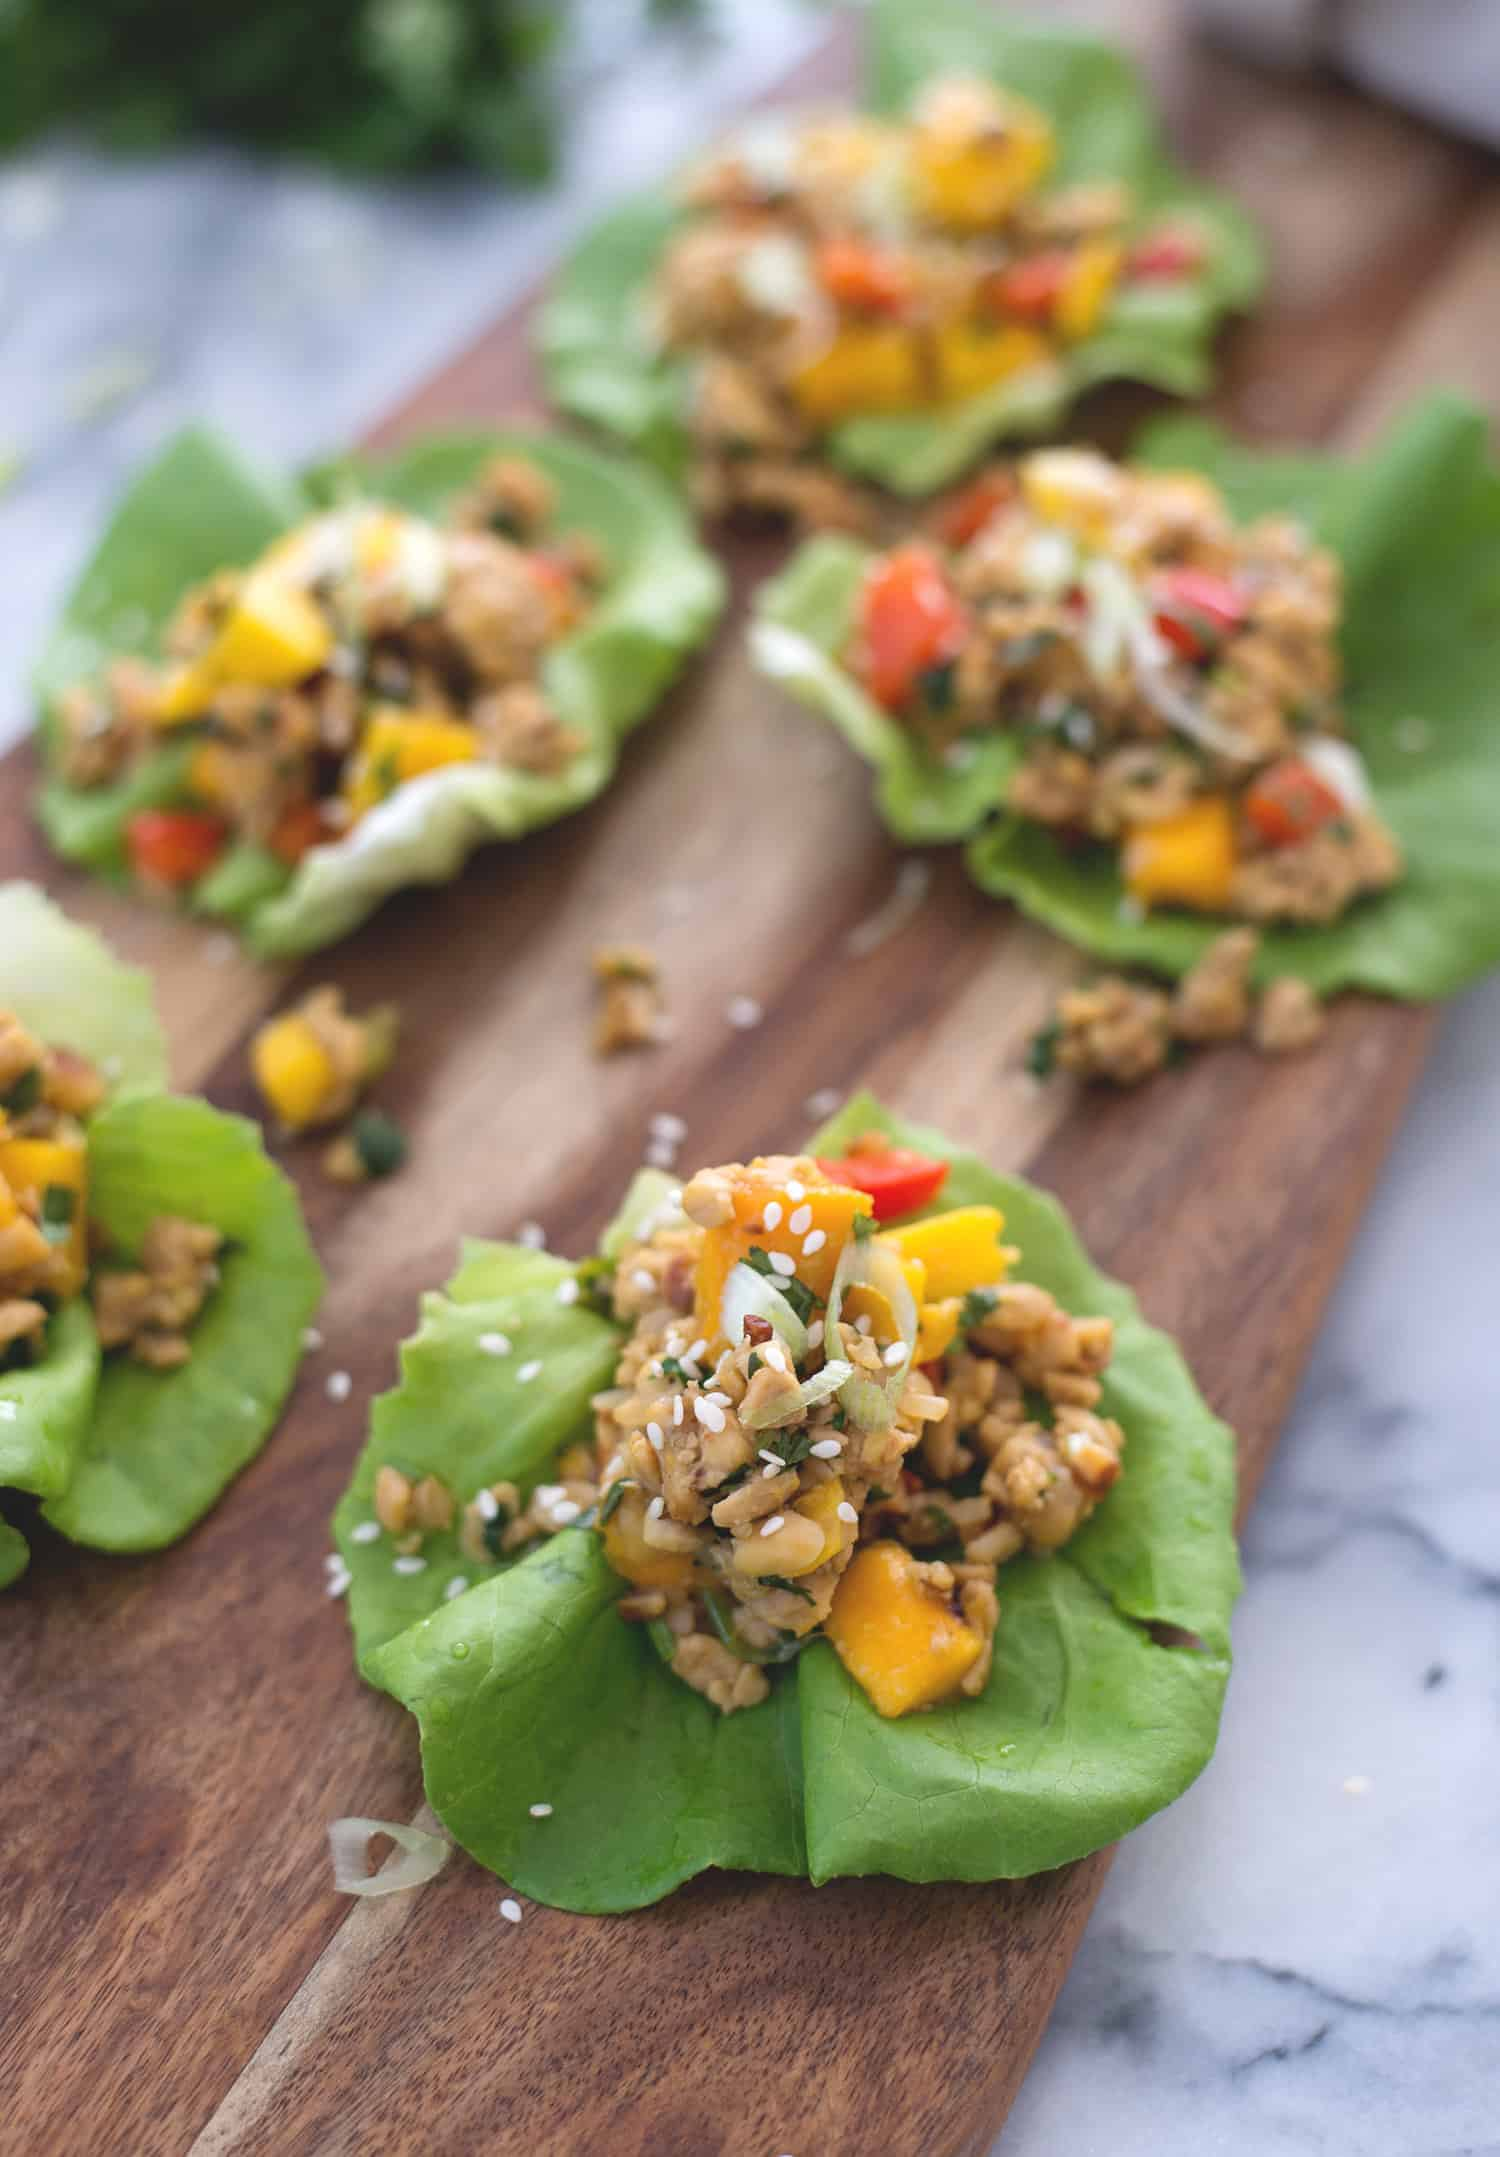 Tempeh Mango Lettuce Wraps! Spicy ground tempeh with peppers and mango, stuffed into butter lettuce cups. Vegan & Gluten-Free | www.delishknowledge.com